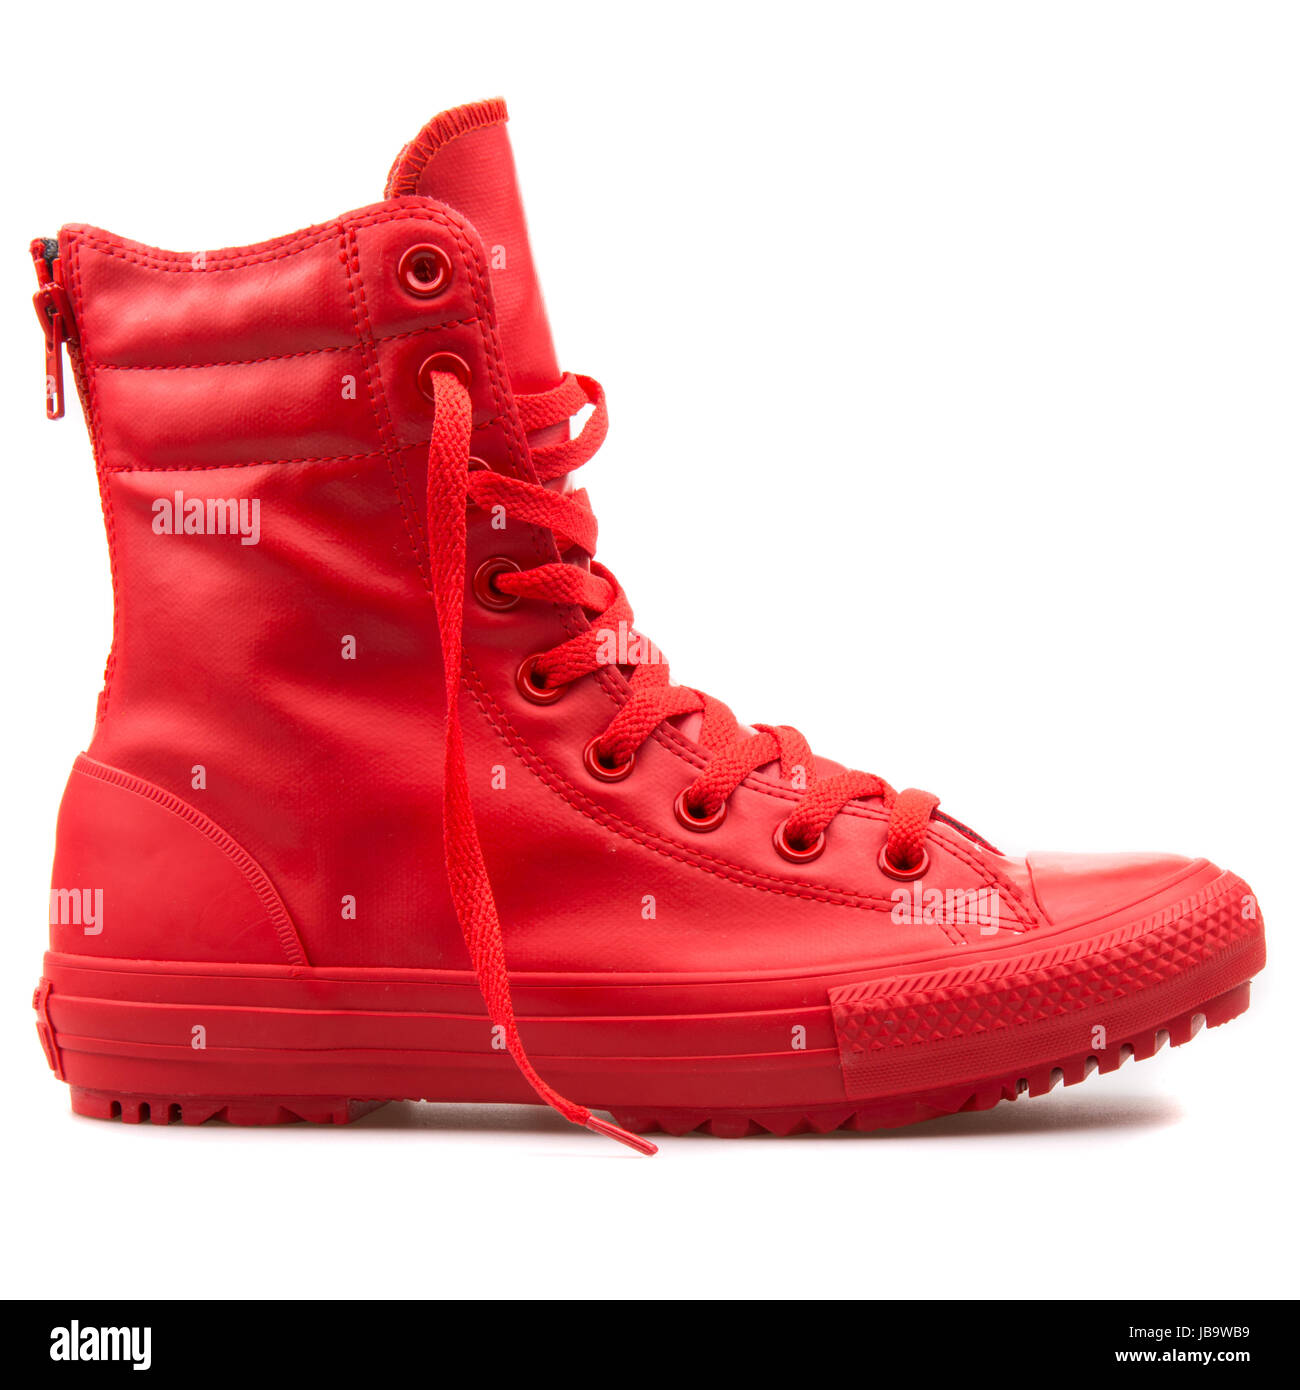 Converse Chuck Taylor All Star Hi-Rise Boot Red Women's Shoes - 549592C - Stock Image